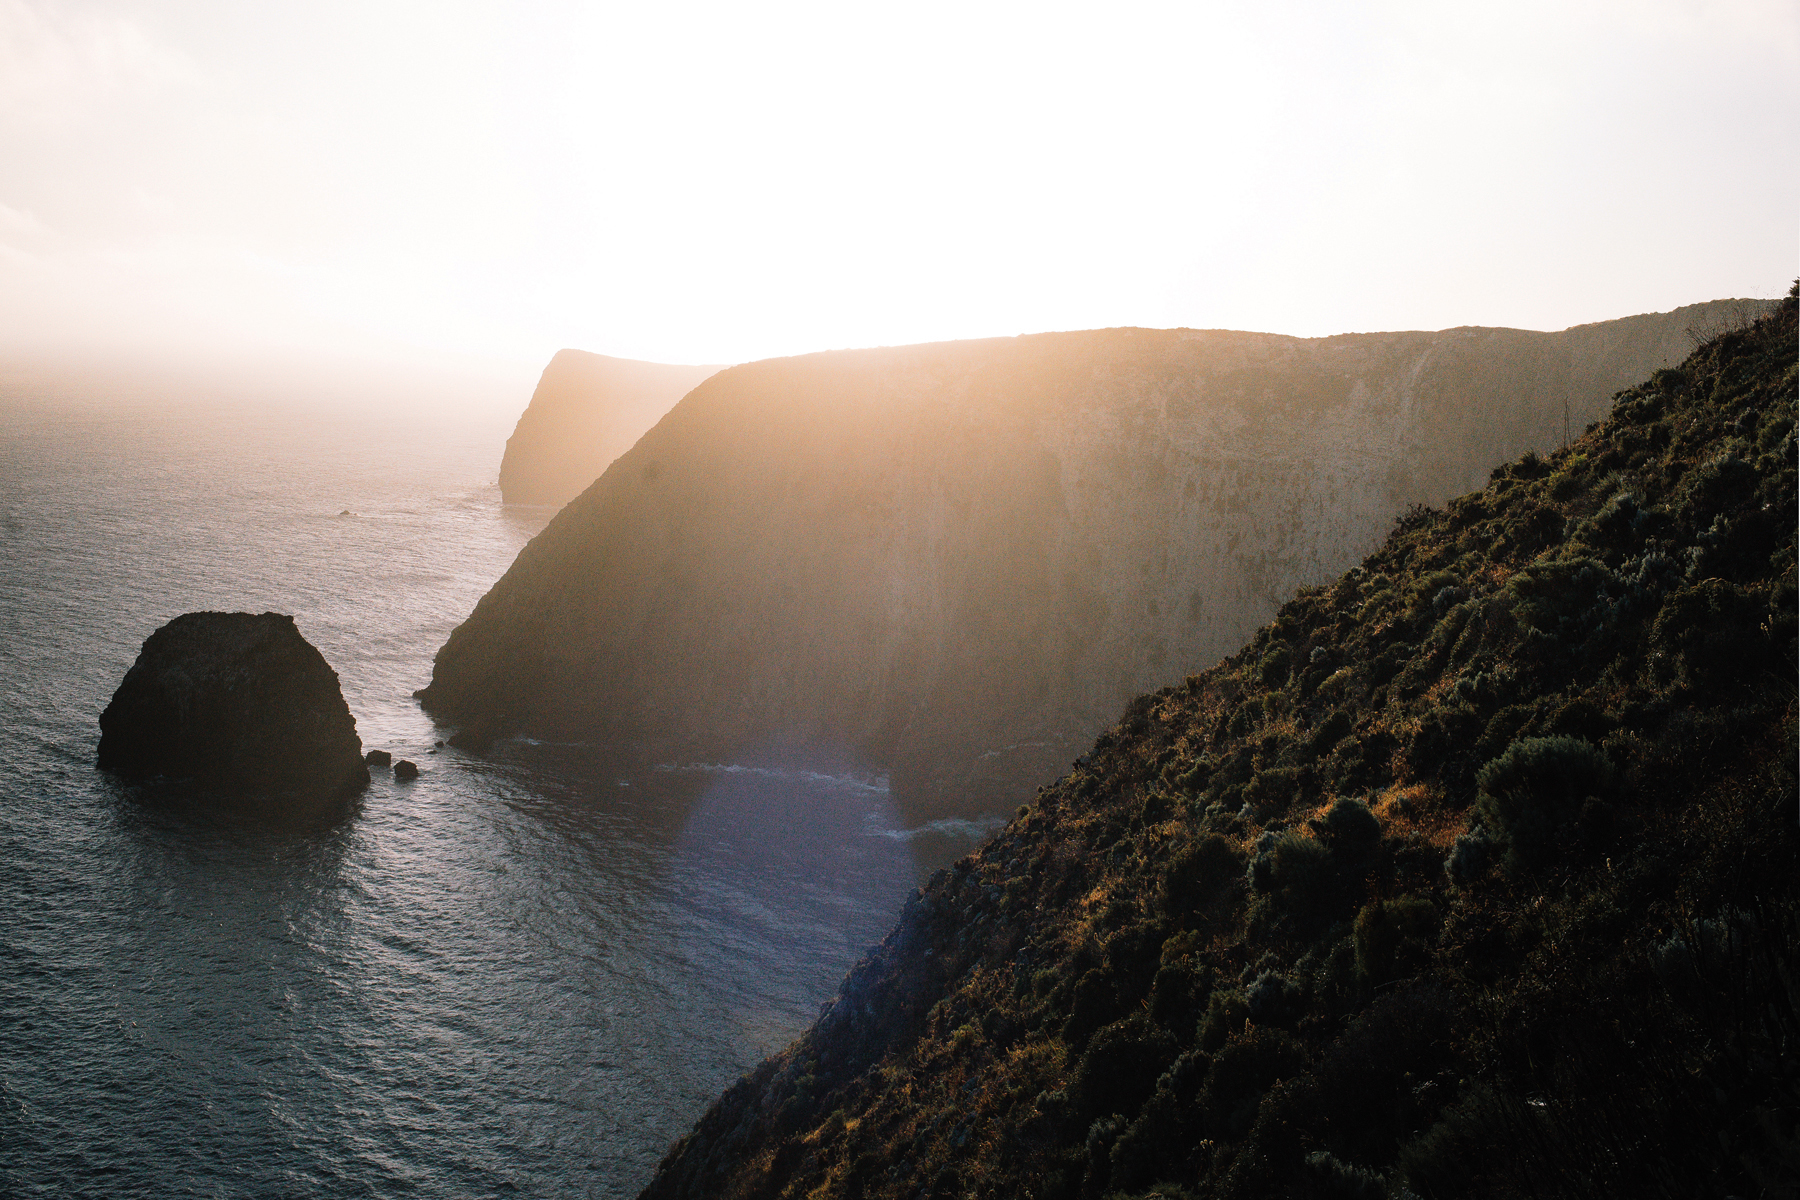 These cliffs, along Santa Cruz Island's northeastern shore, host one of the southernmost breeding colonies of Cassin's auklets ( Ptychoramphus aleuticus ). The cliffs offer the perfect vantage point for watching these stout seabirds feed by diving upwards of 150 feet into the crystal clear water, propelling themselves about in pursuit of krill.